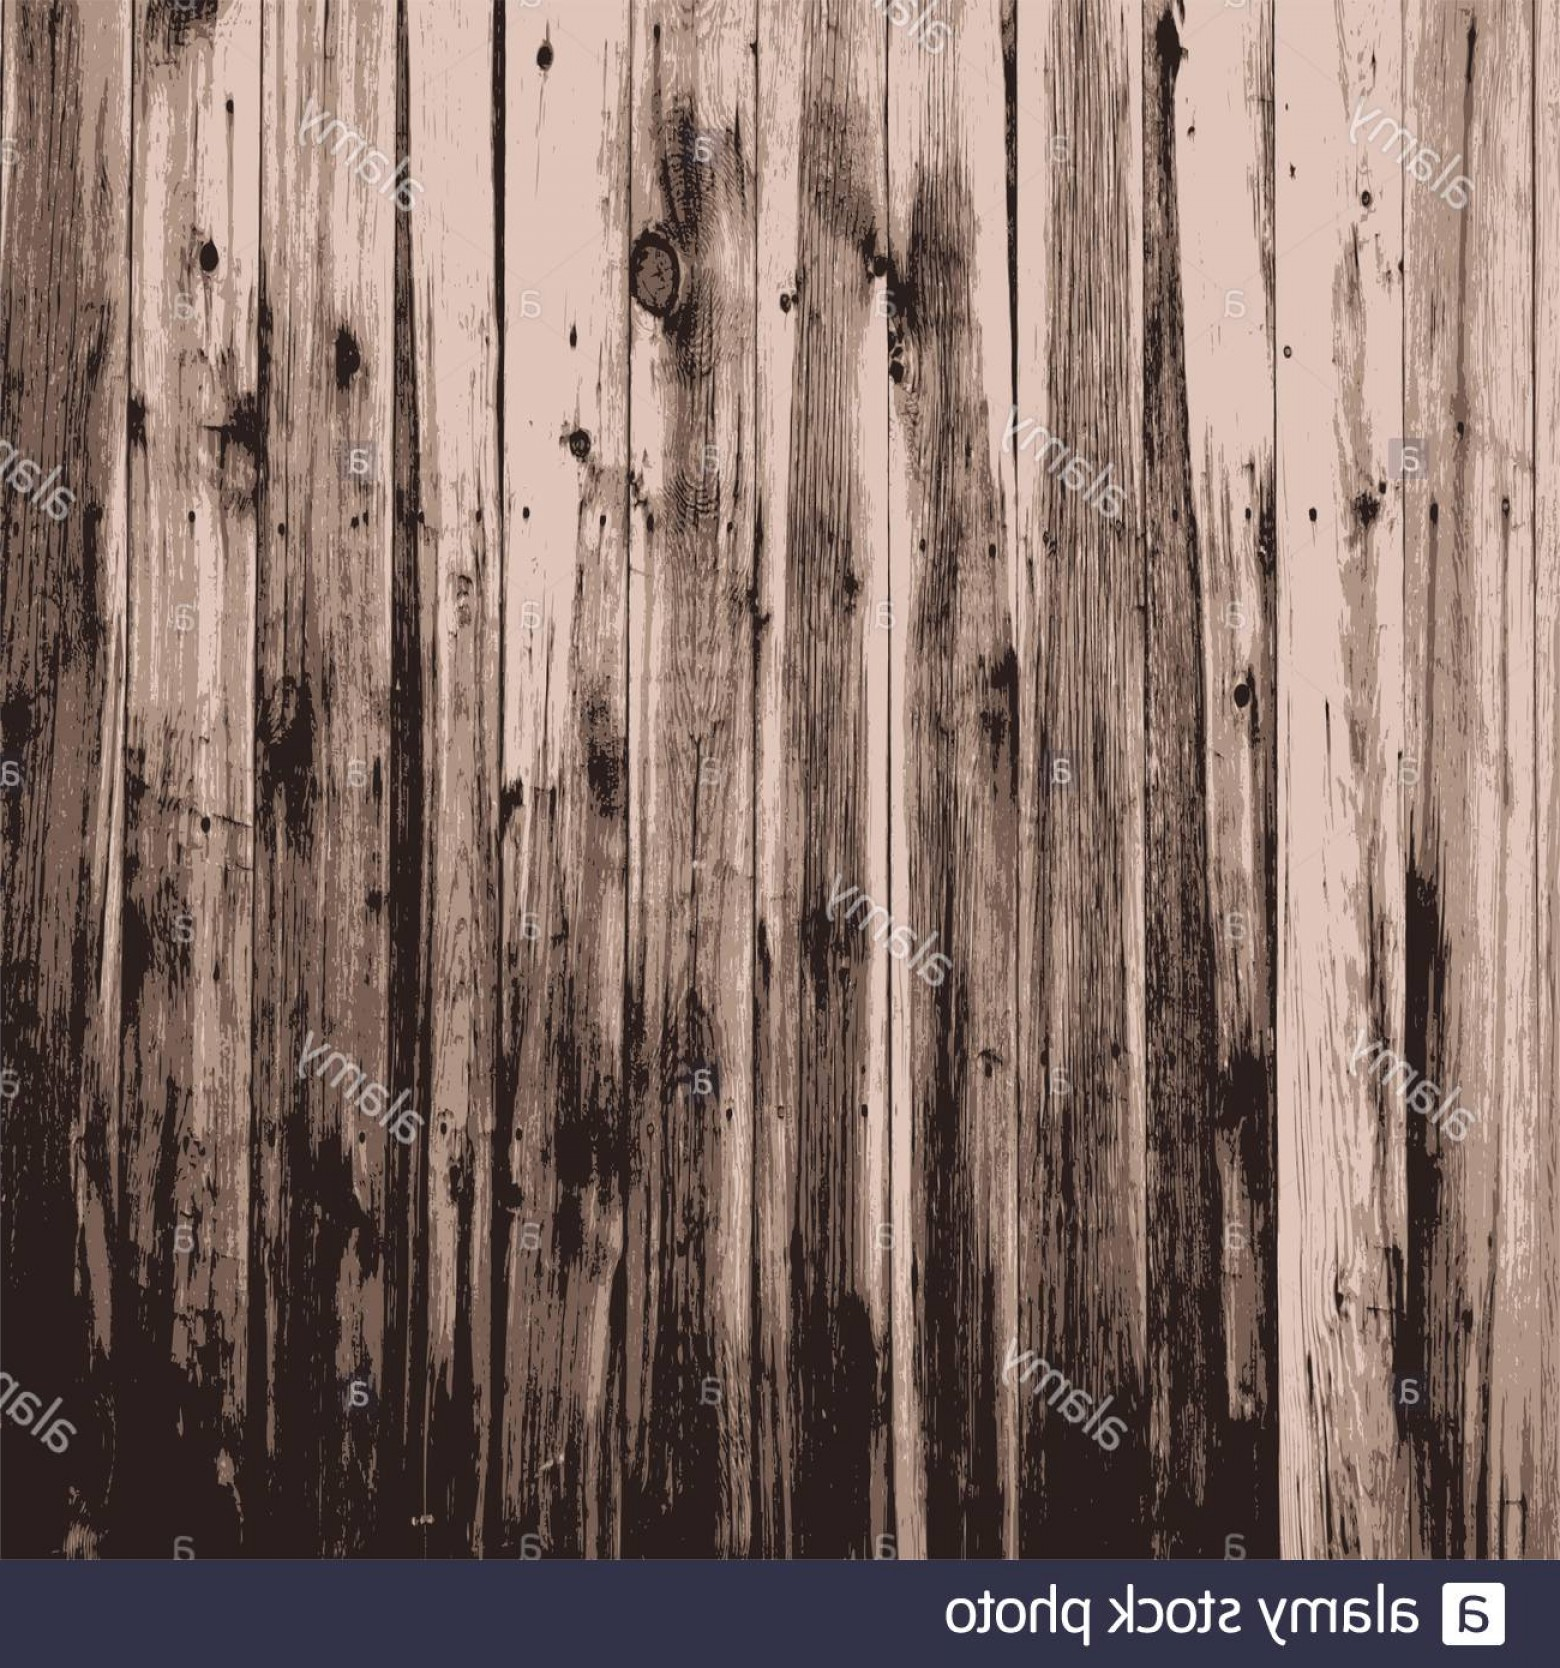 Wood Plank Vector Art: Wooden Texture Background Realistic Plank Vector Illustration Image